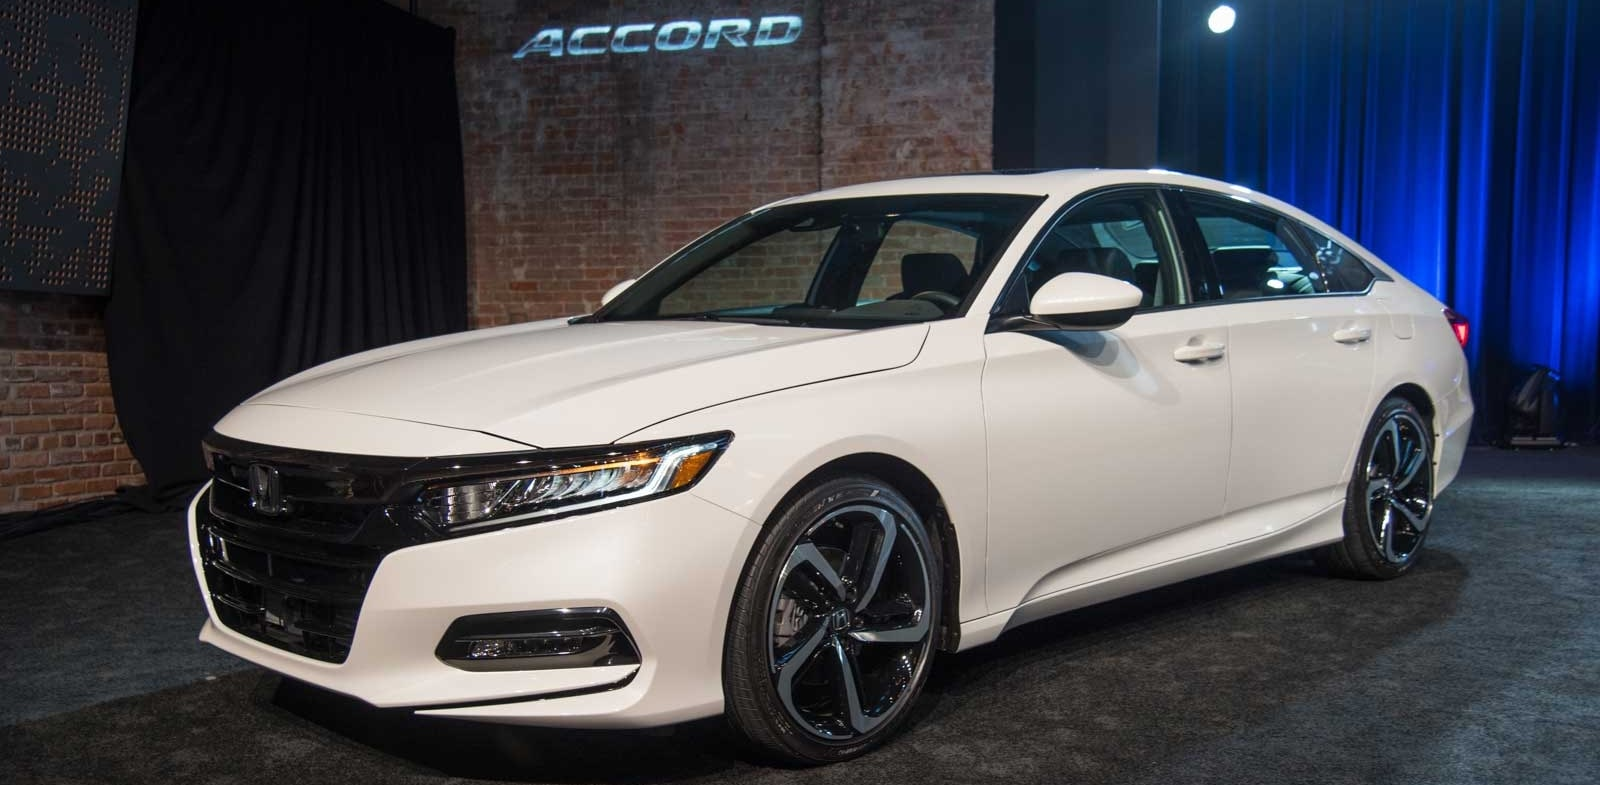 Image result for honda accord 2018